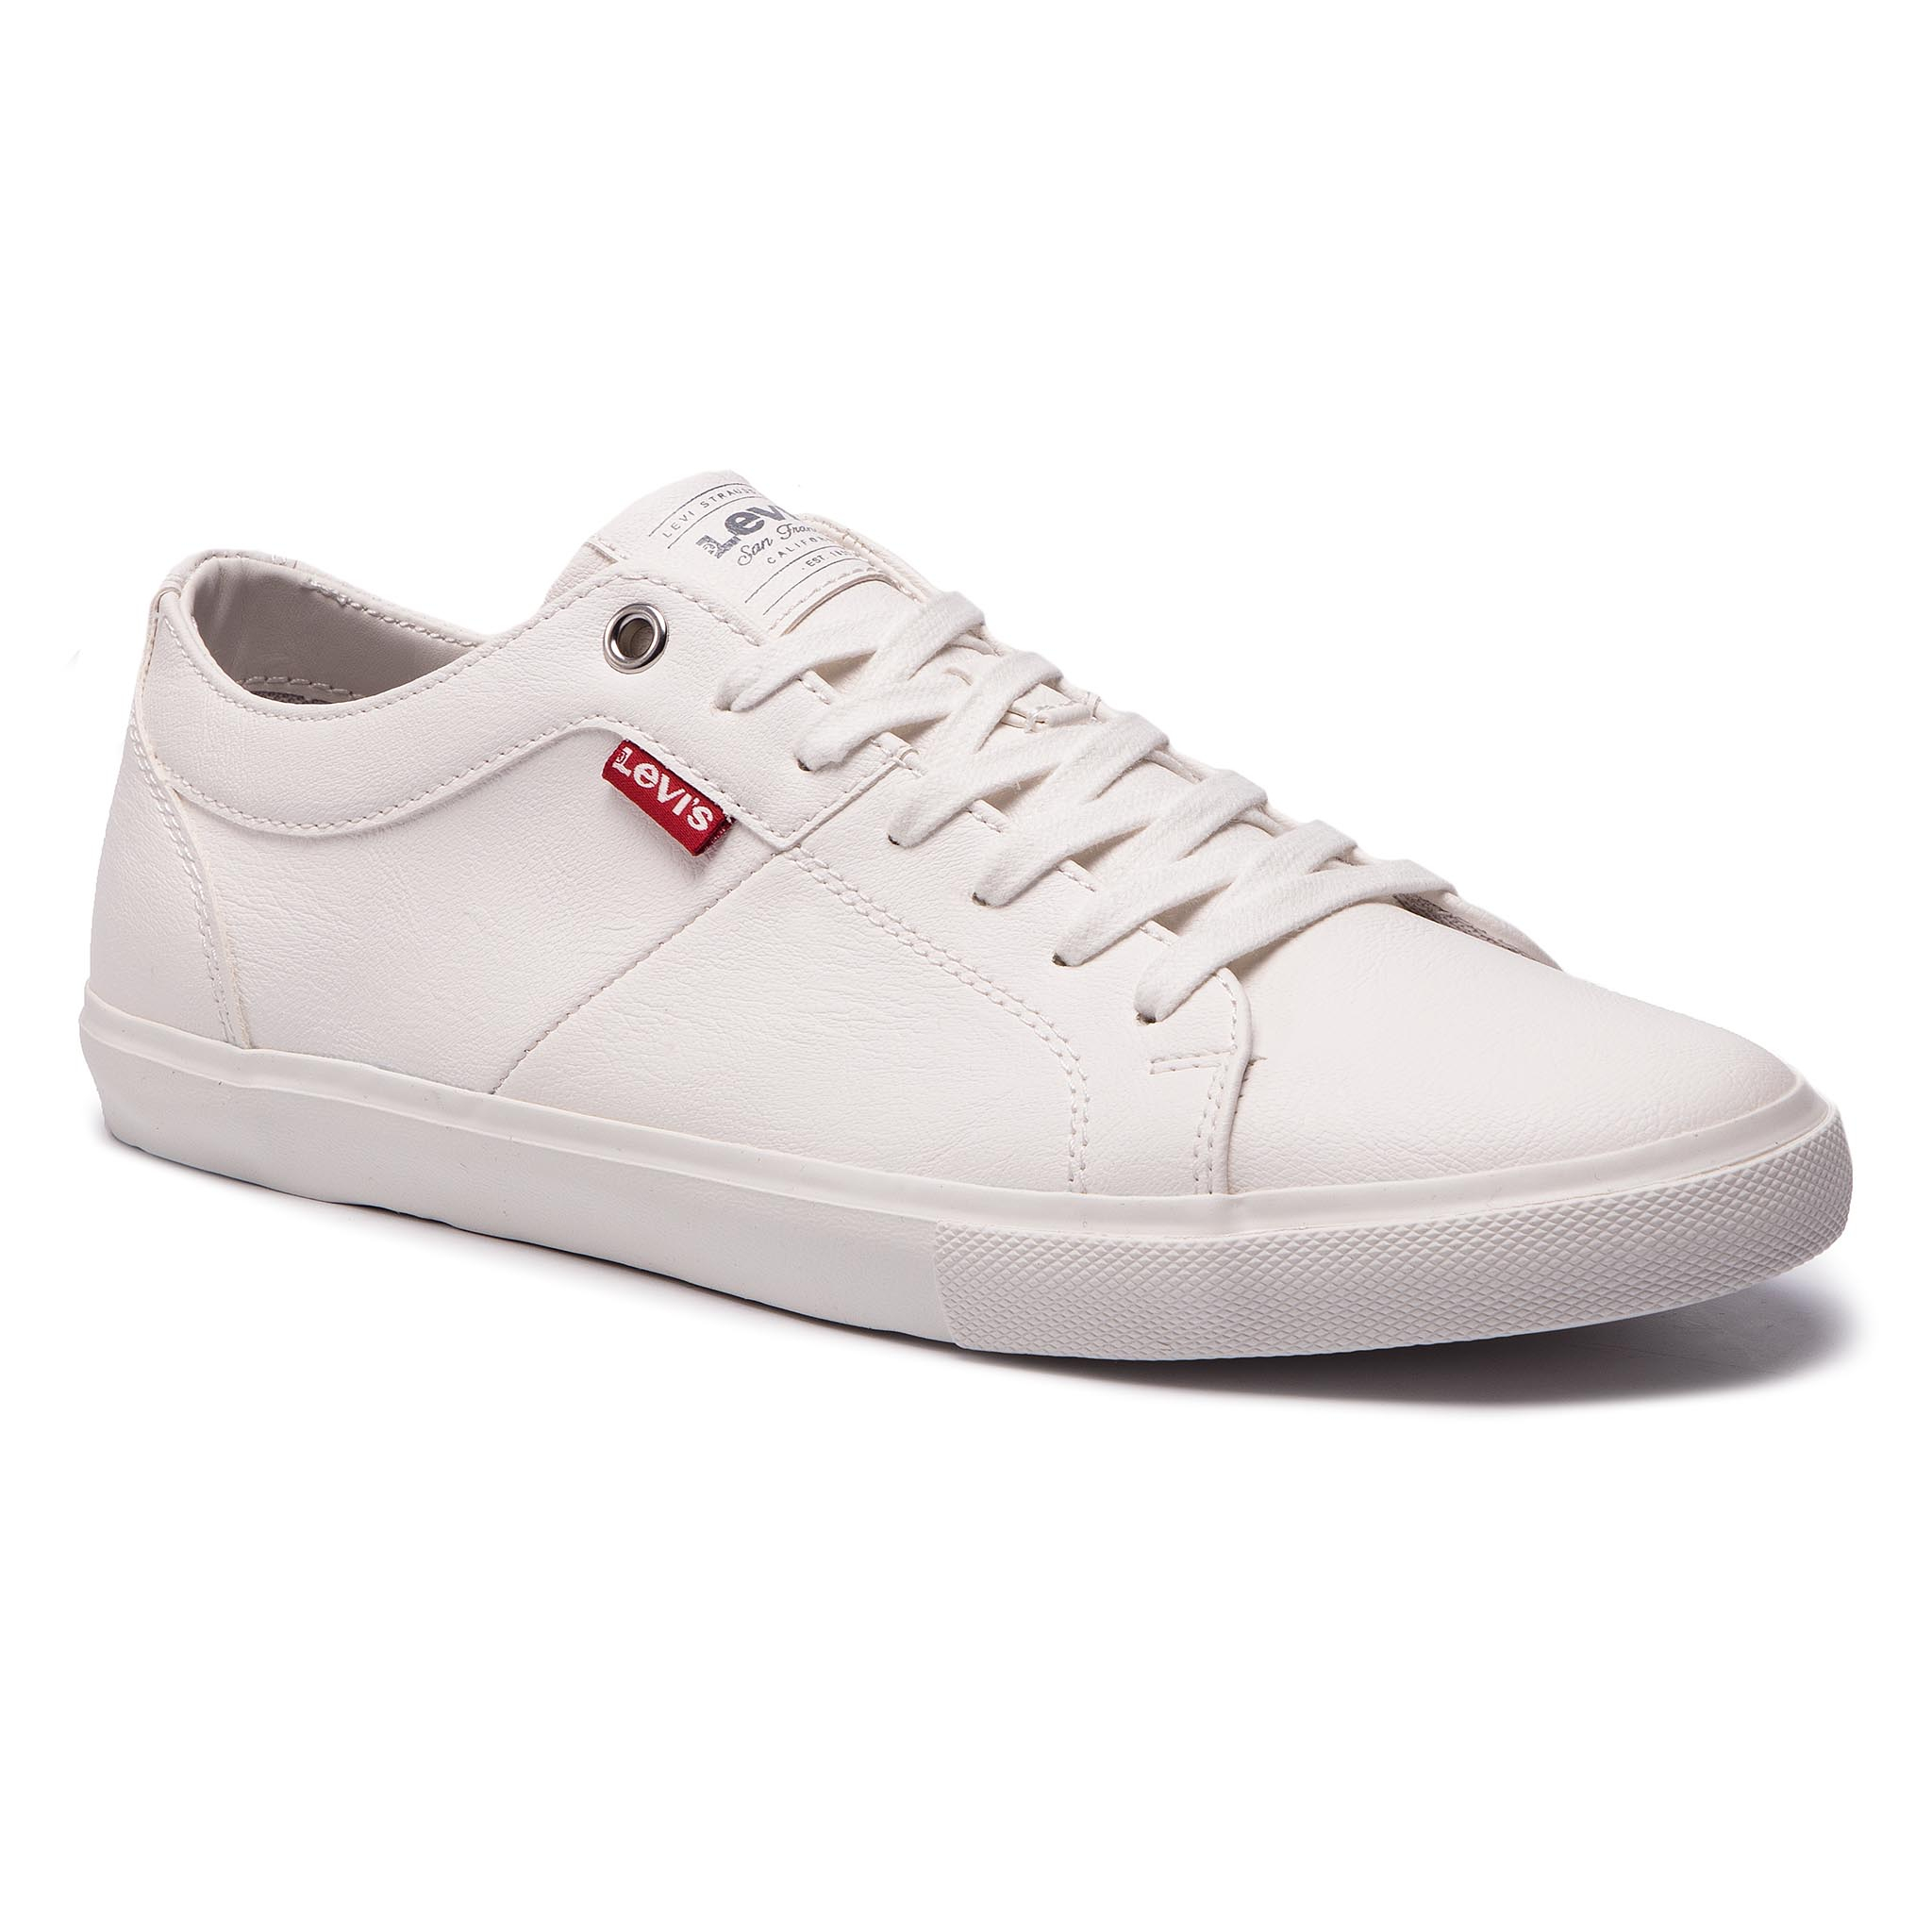 Teniși LEVI'S - 225826-794-50 Brilliant White